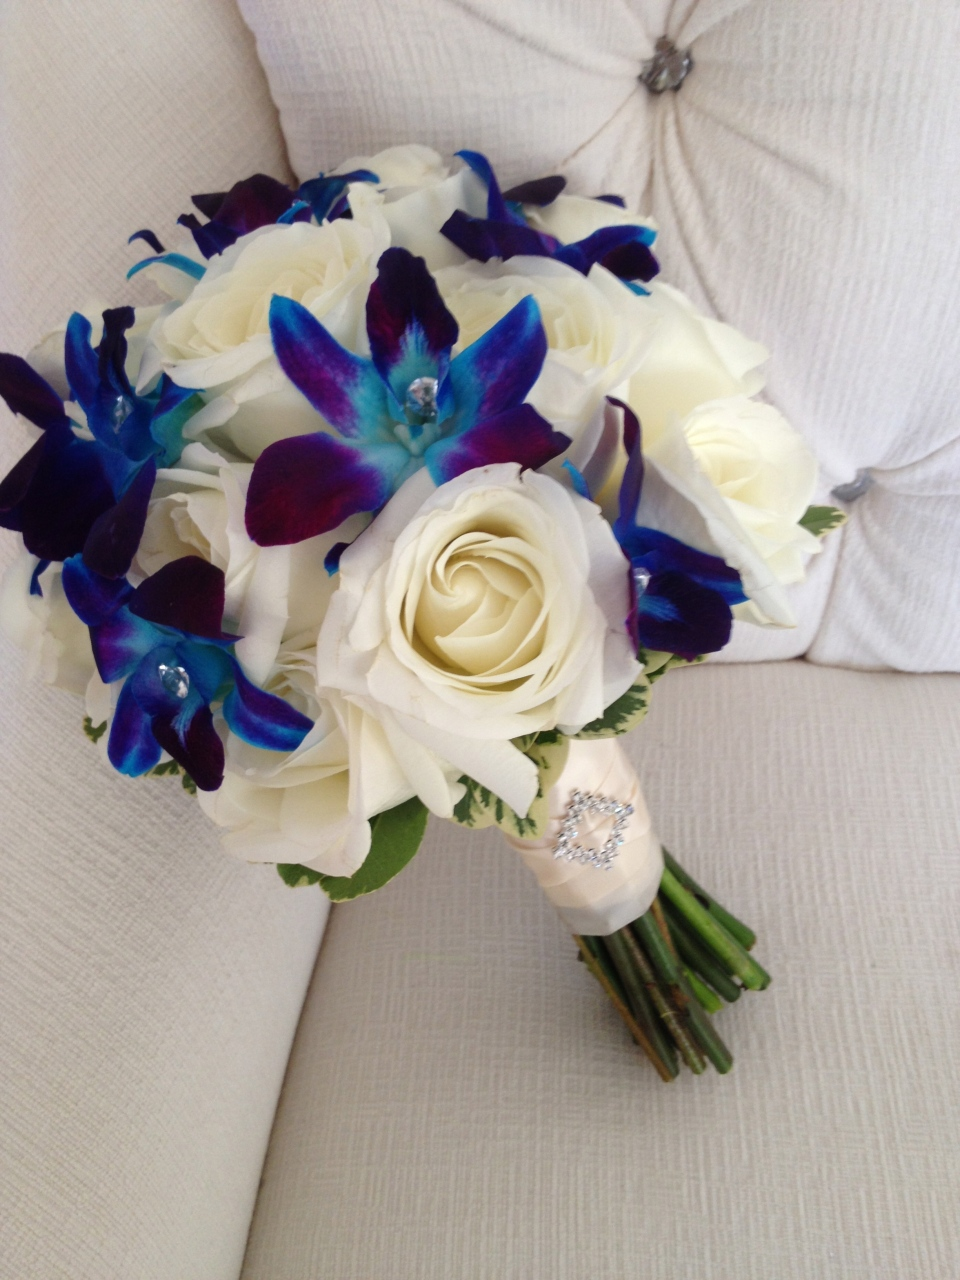 White rose and blue dendrobium orchid bouquet